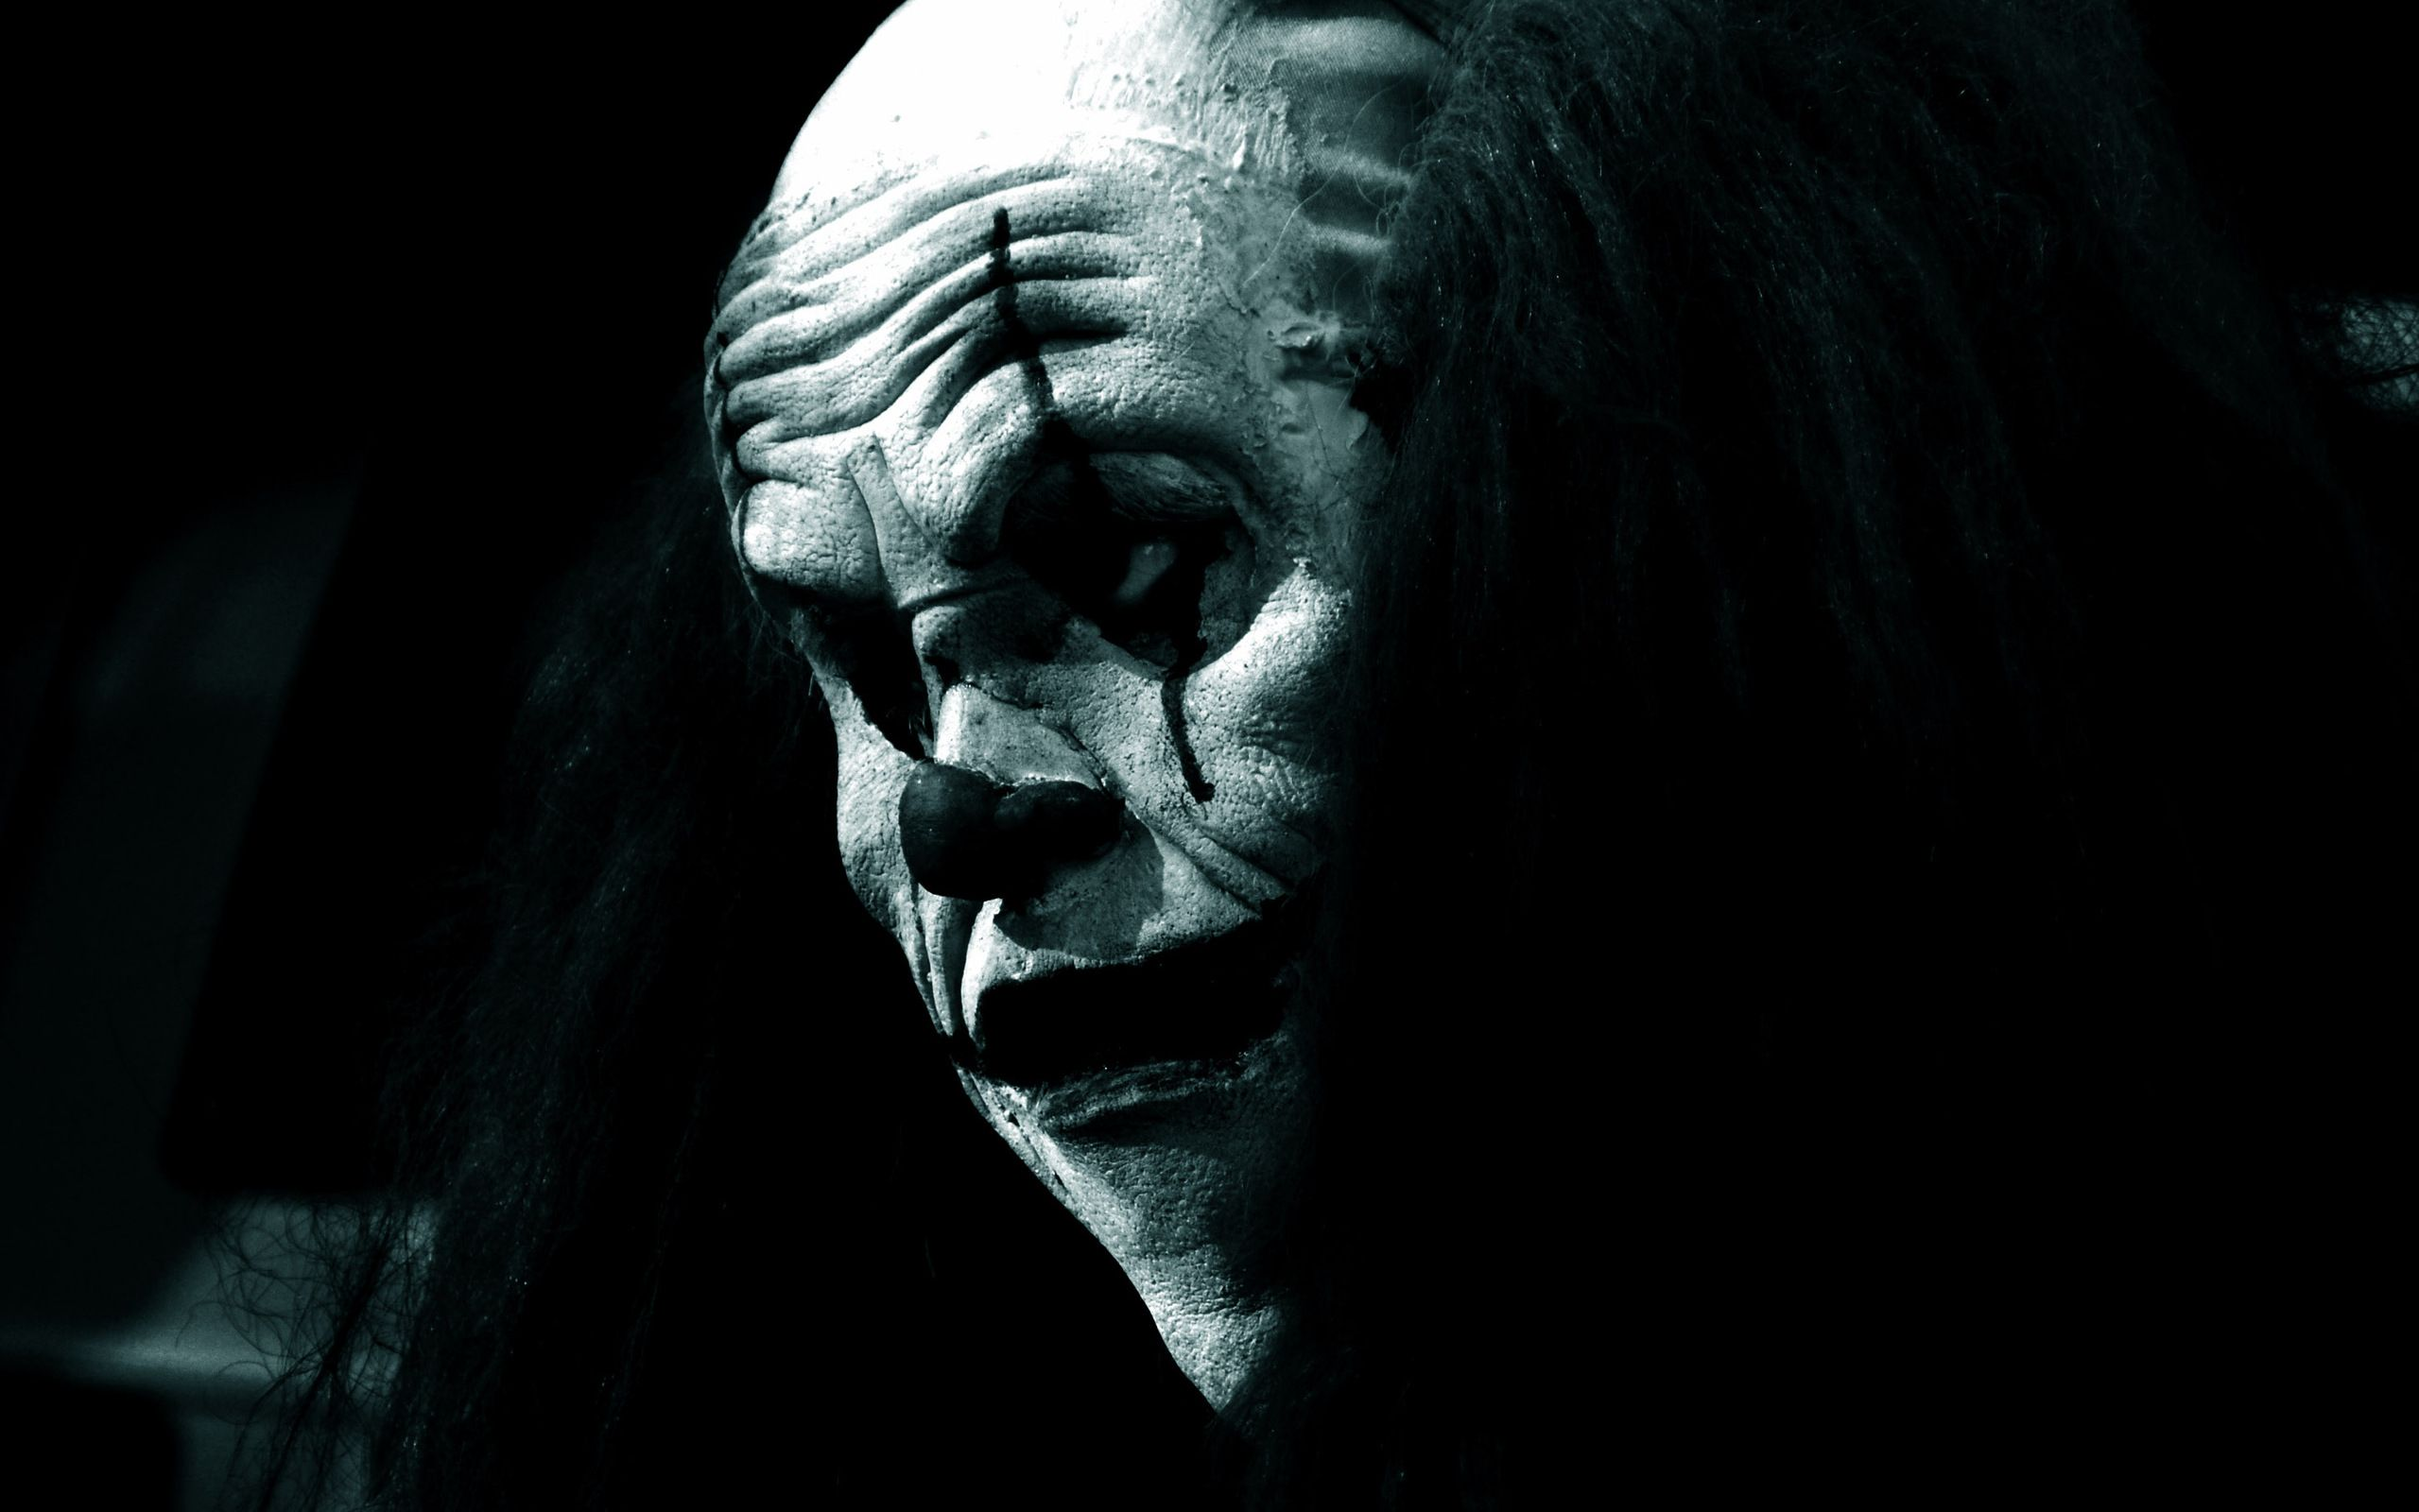 Scary Clown Wallpaper Scary clown wallpaper gothic